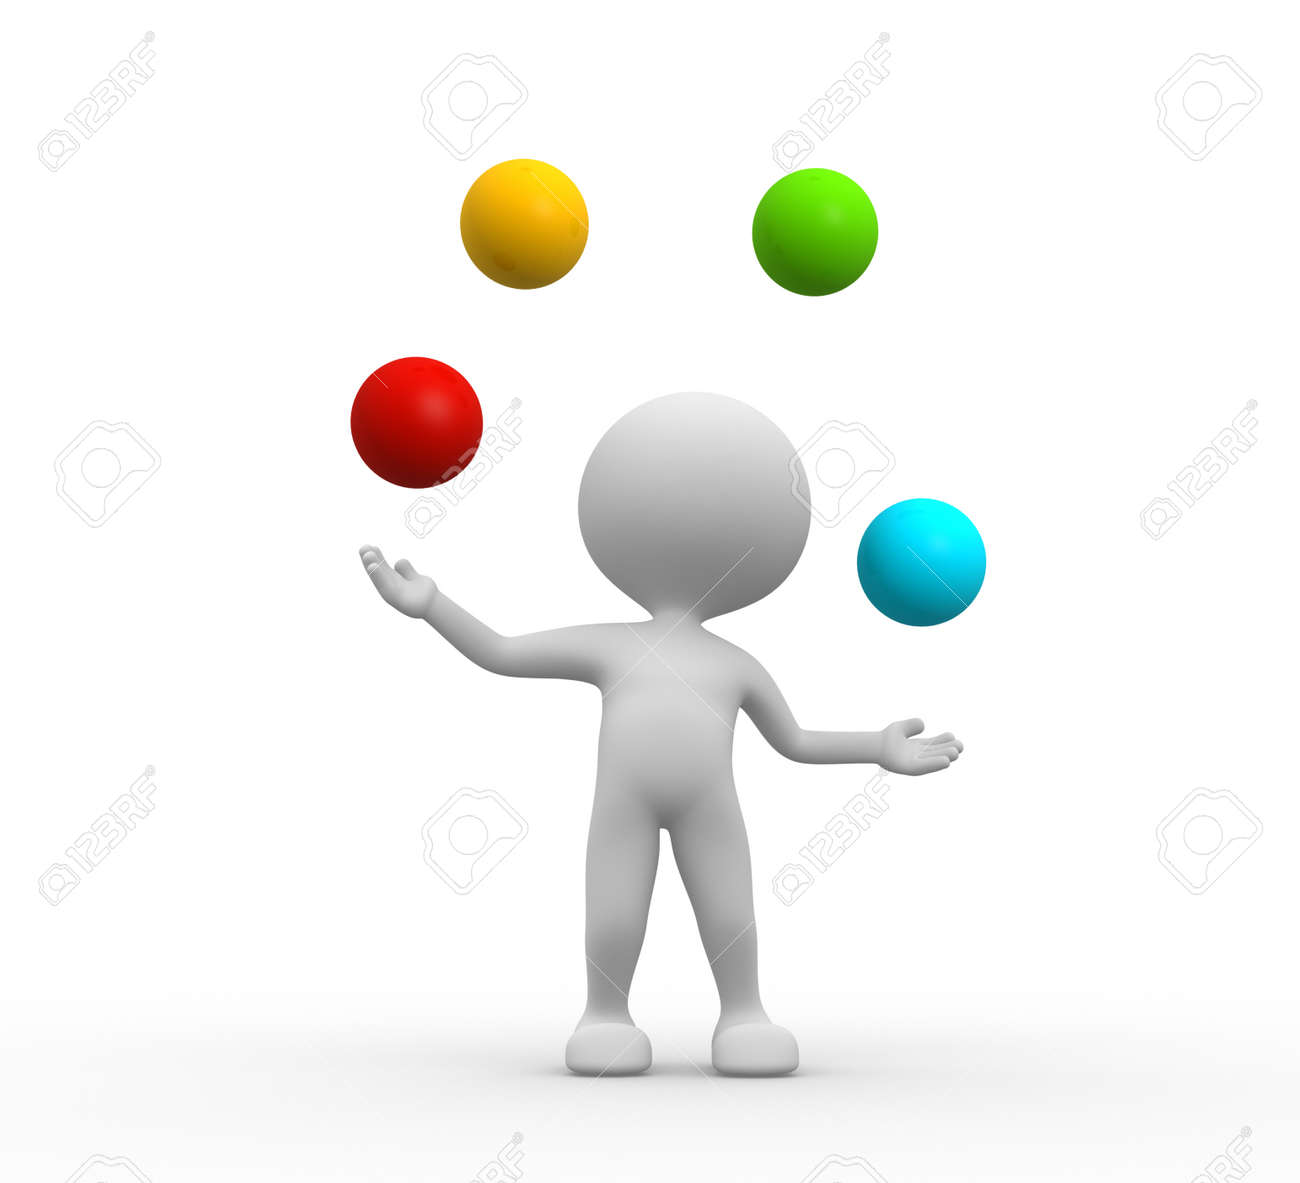 3d people - men, person juggles with a balls Stock Photo - 25849964